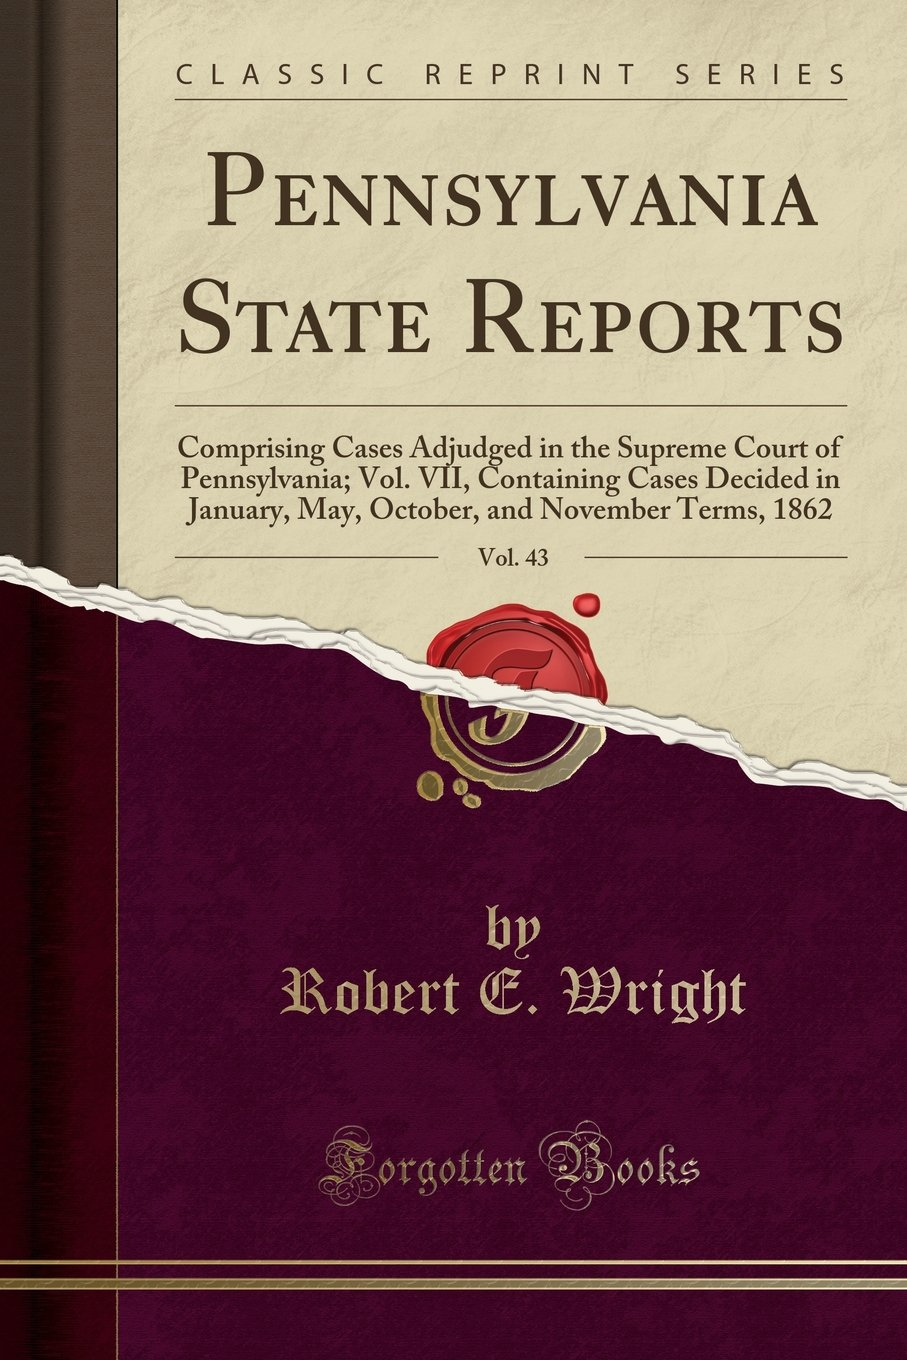 Download Pennsylvania State Reports, Vol. 43: Comprising Cases Adjudged in the Supreme Court of Pennsylvania; Vol. VII, Containing Cases Decided in January, ... and November Terms, 1862 (Classic Reprint) pdf epub